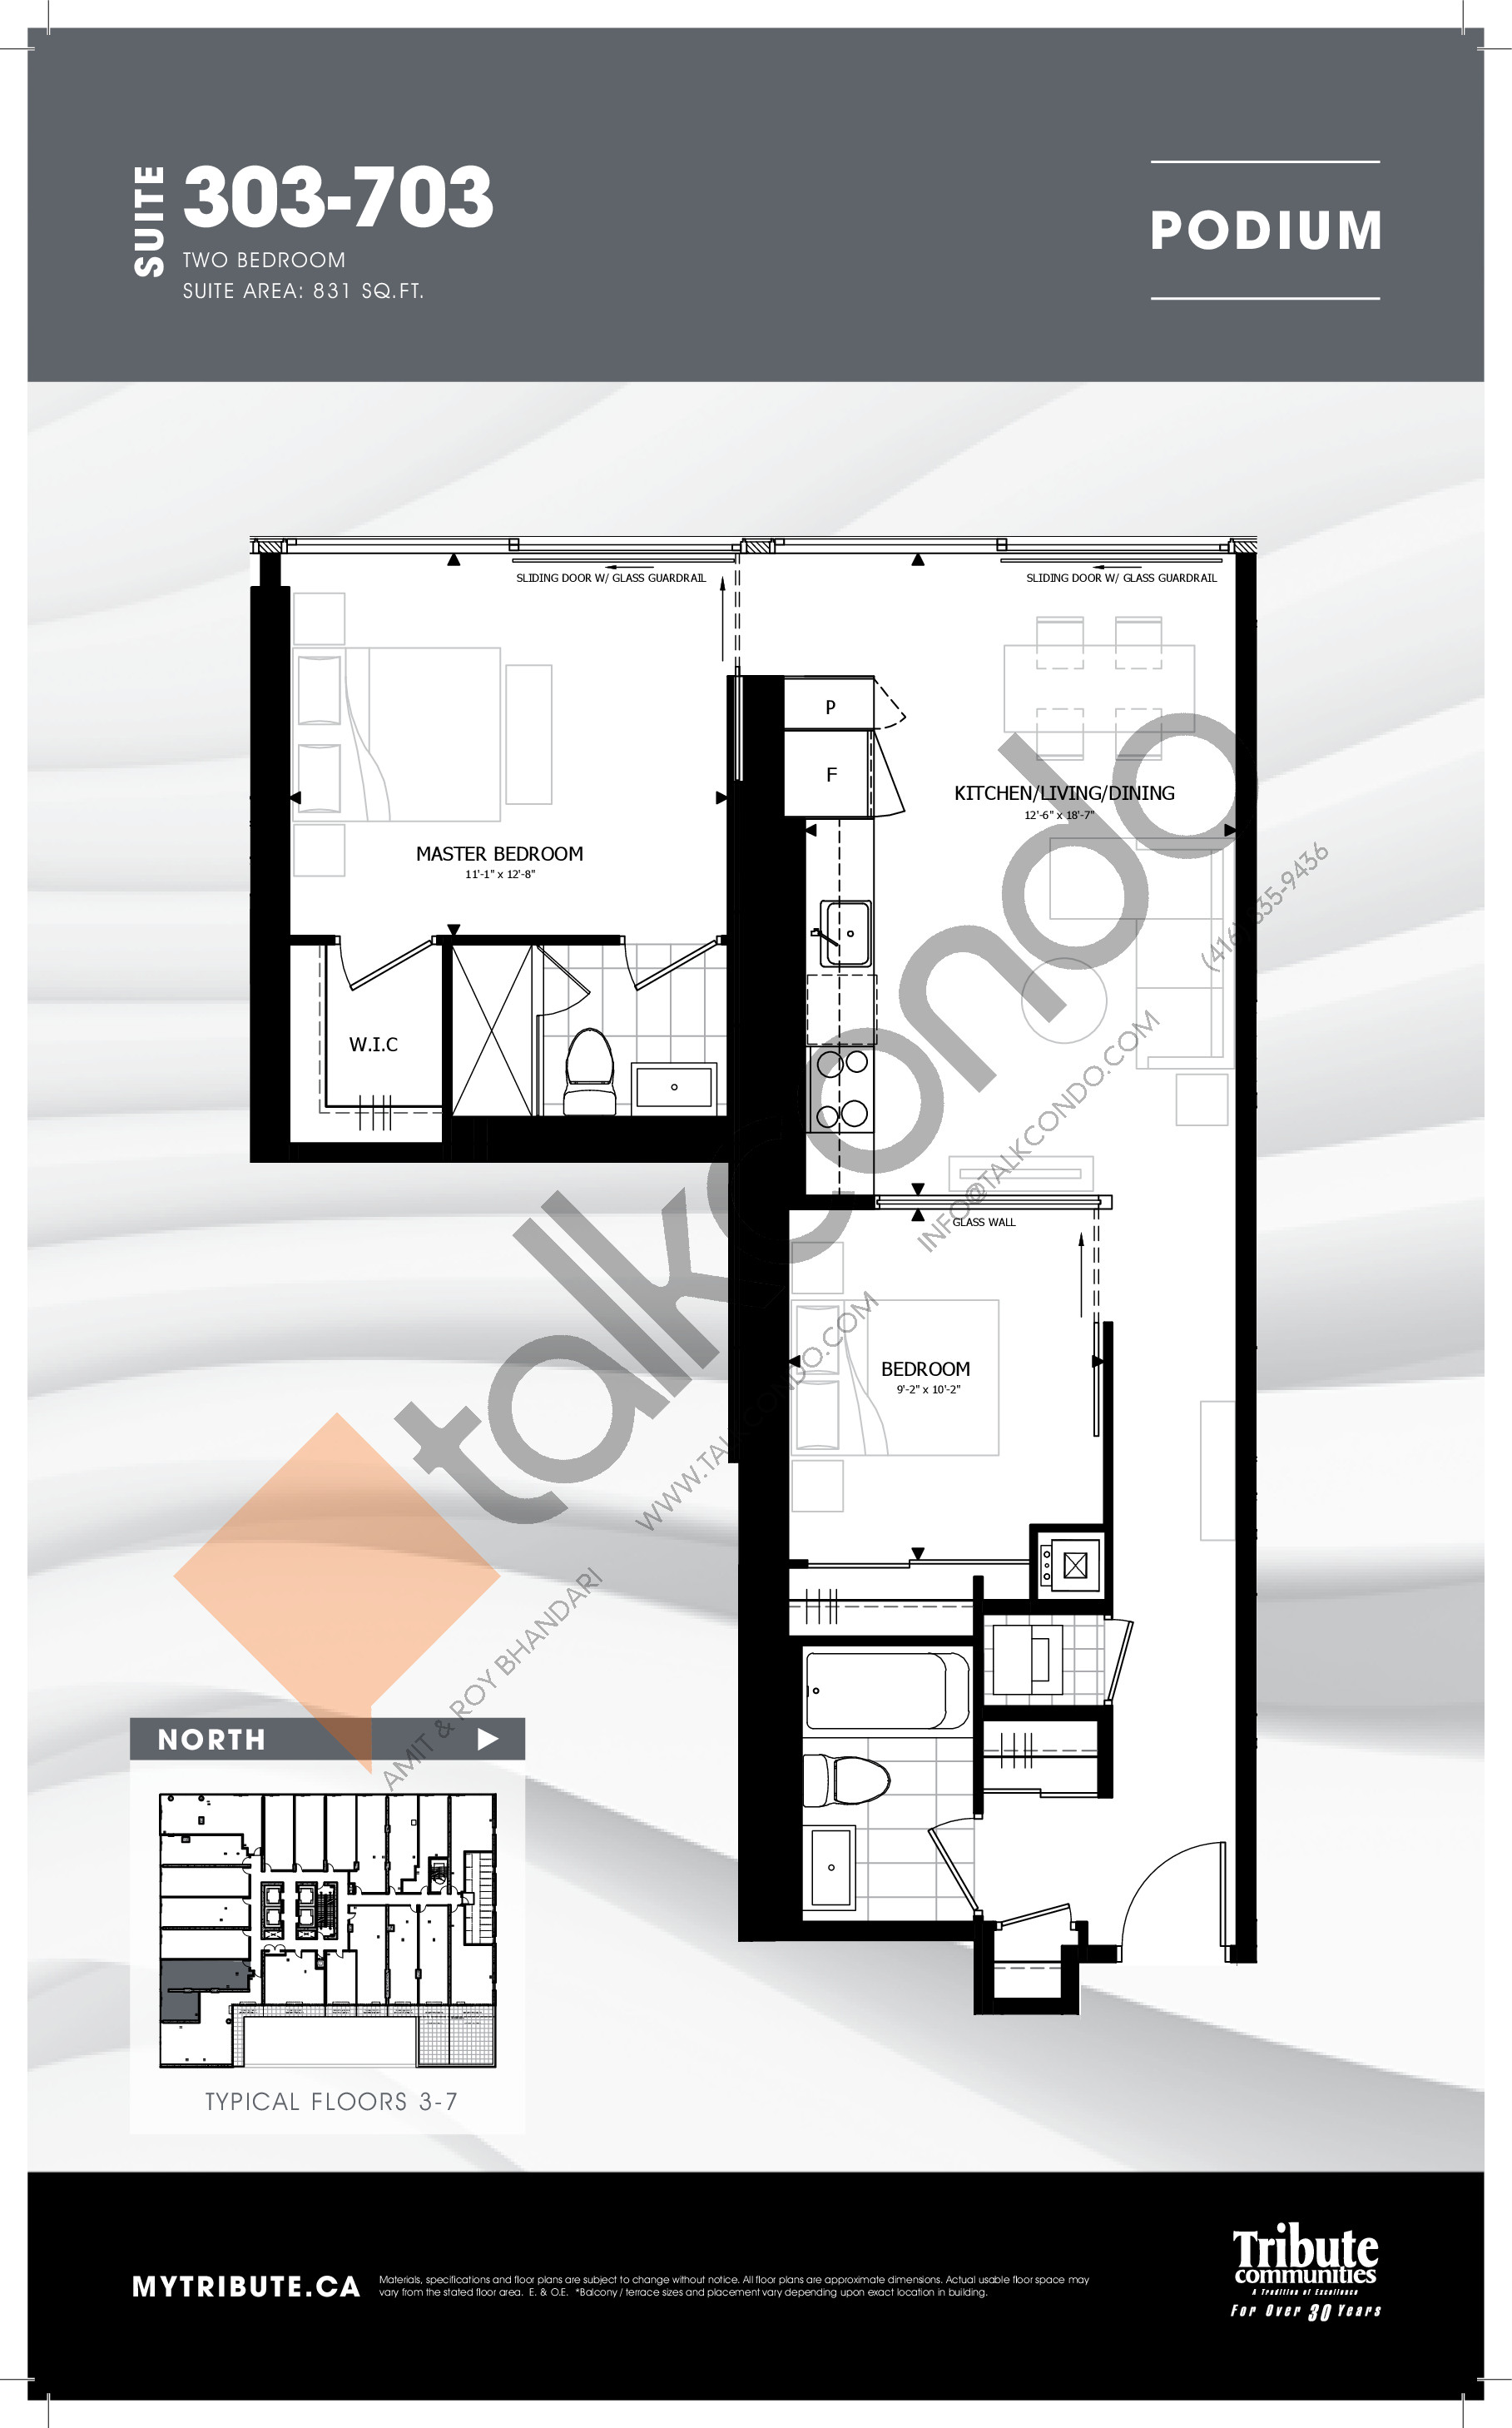 303-703 Floor Plan at Stanley Condos - 831 sq.ft